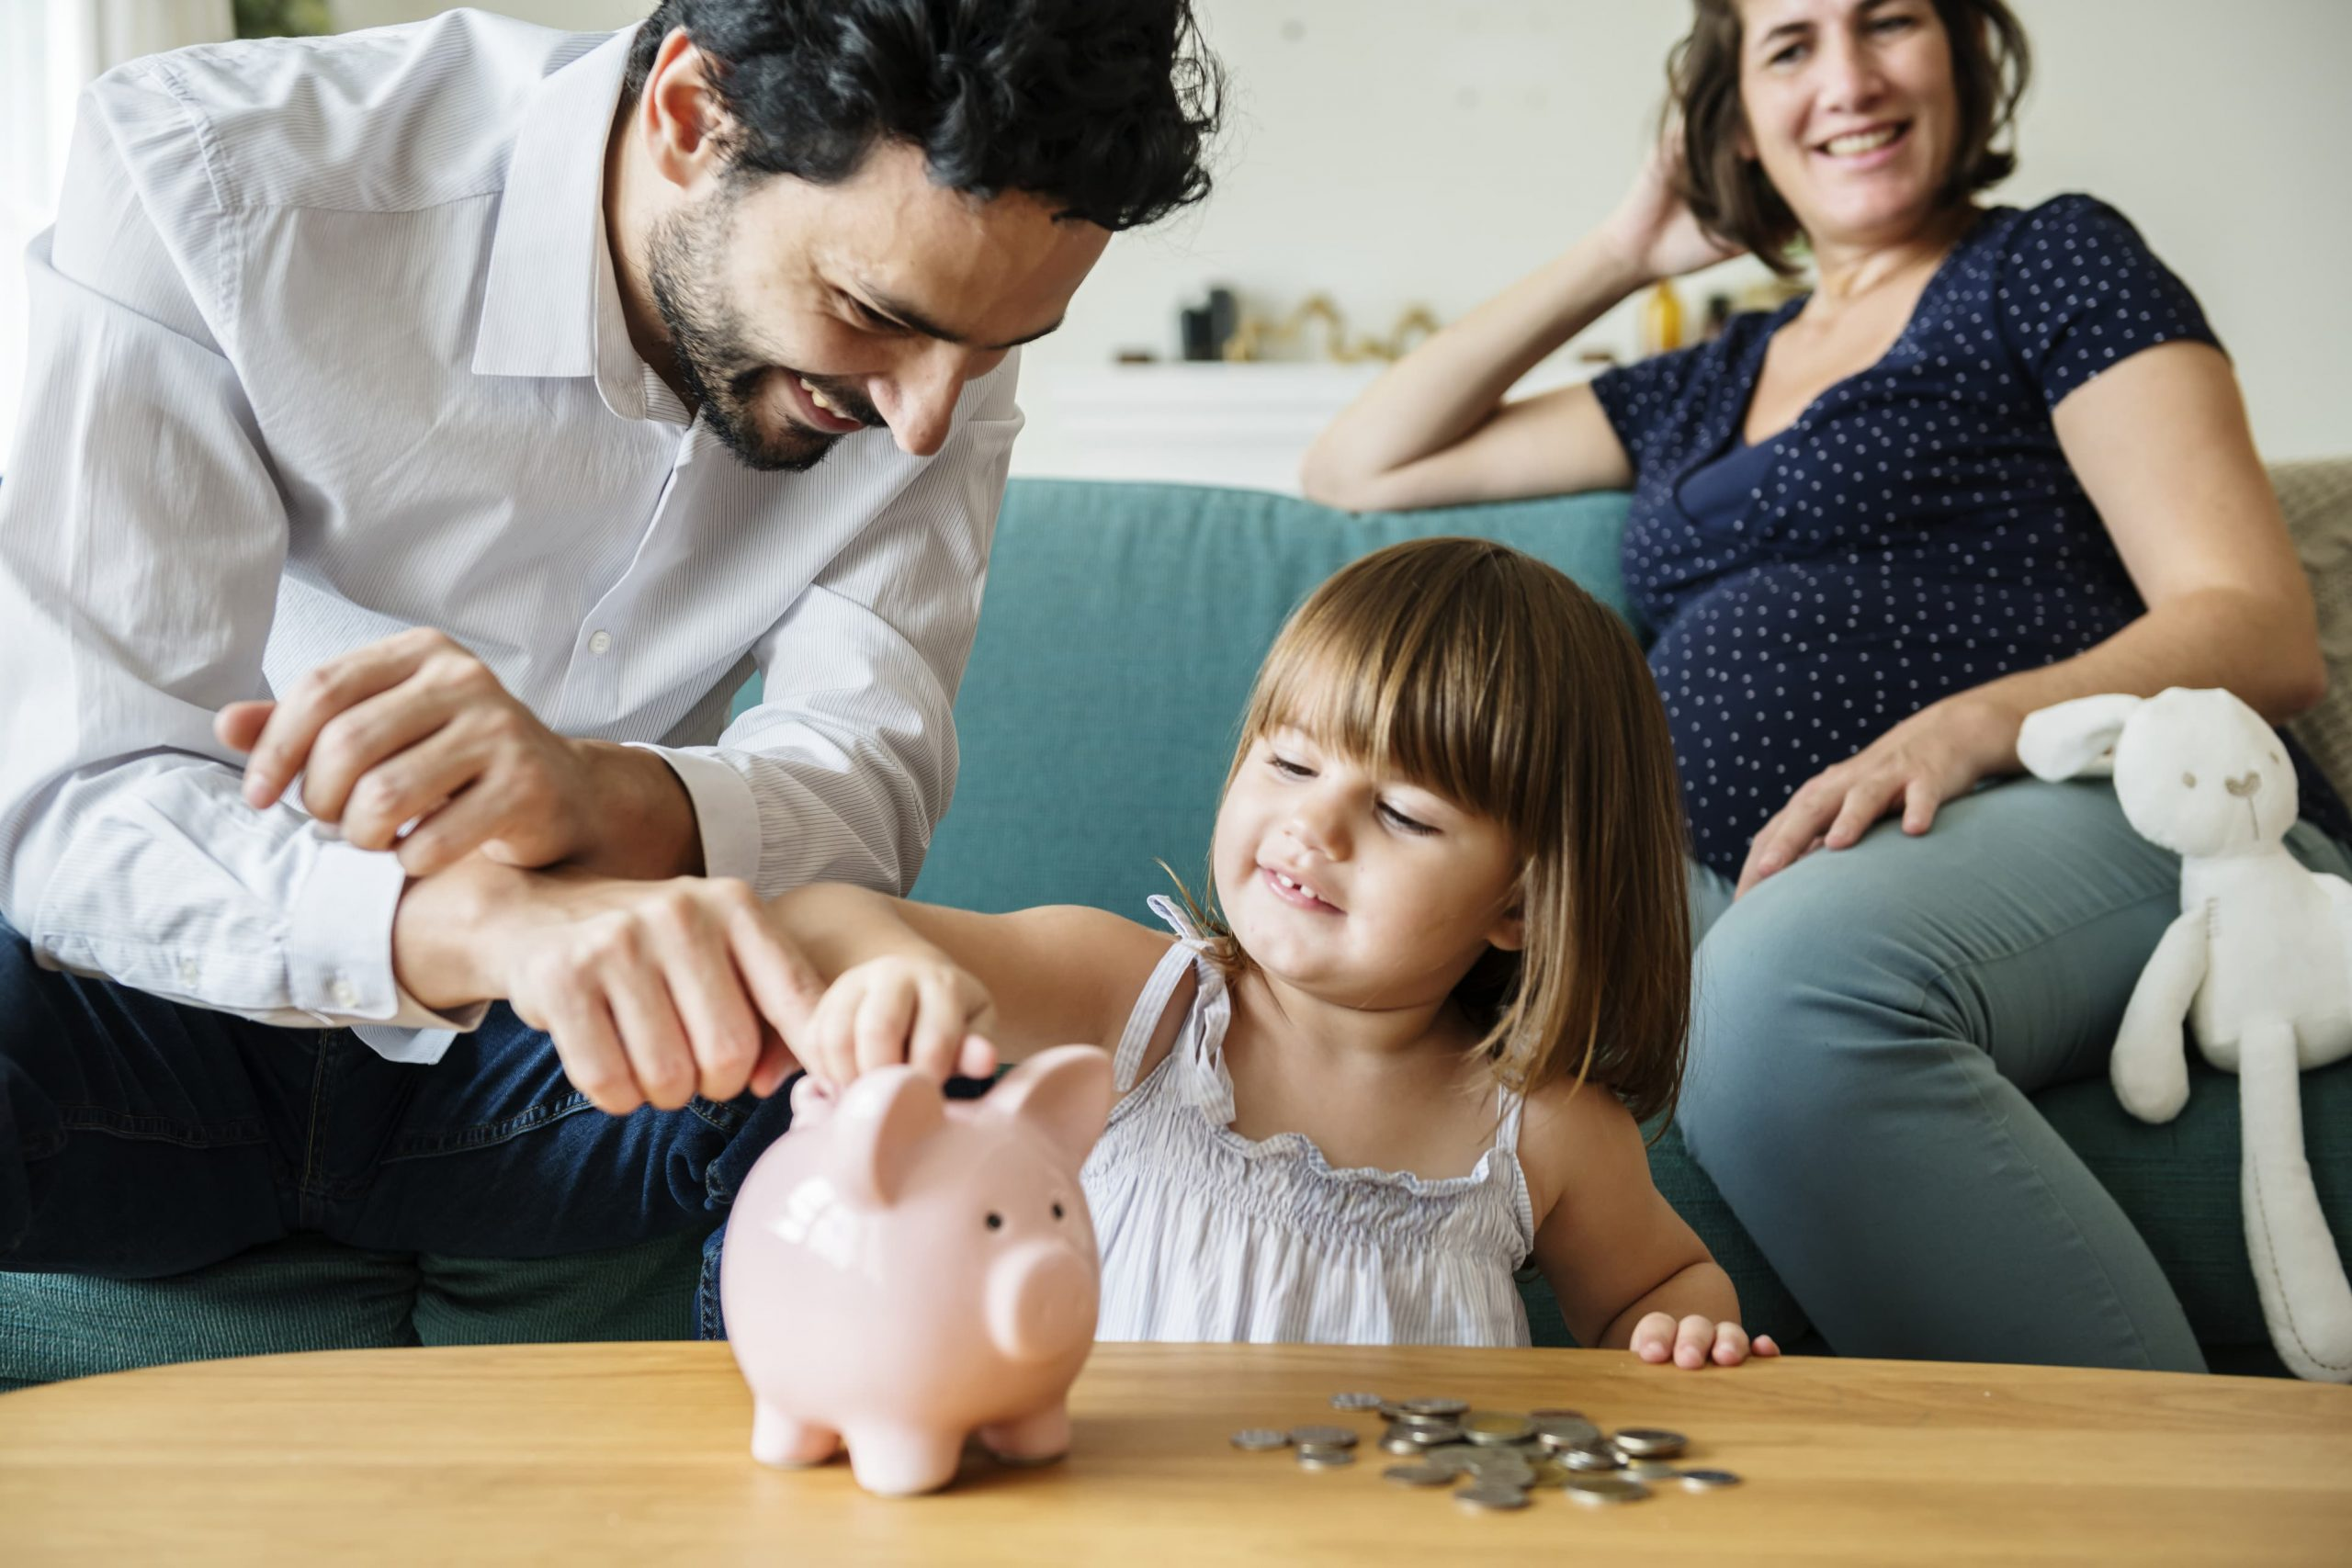 Young man showing his daughter a piggy bank, pregnant mother sitting on the sofa near them